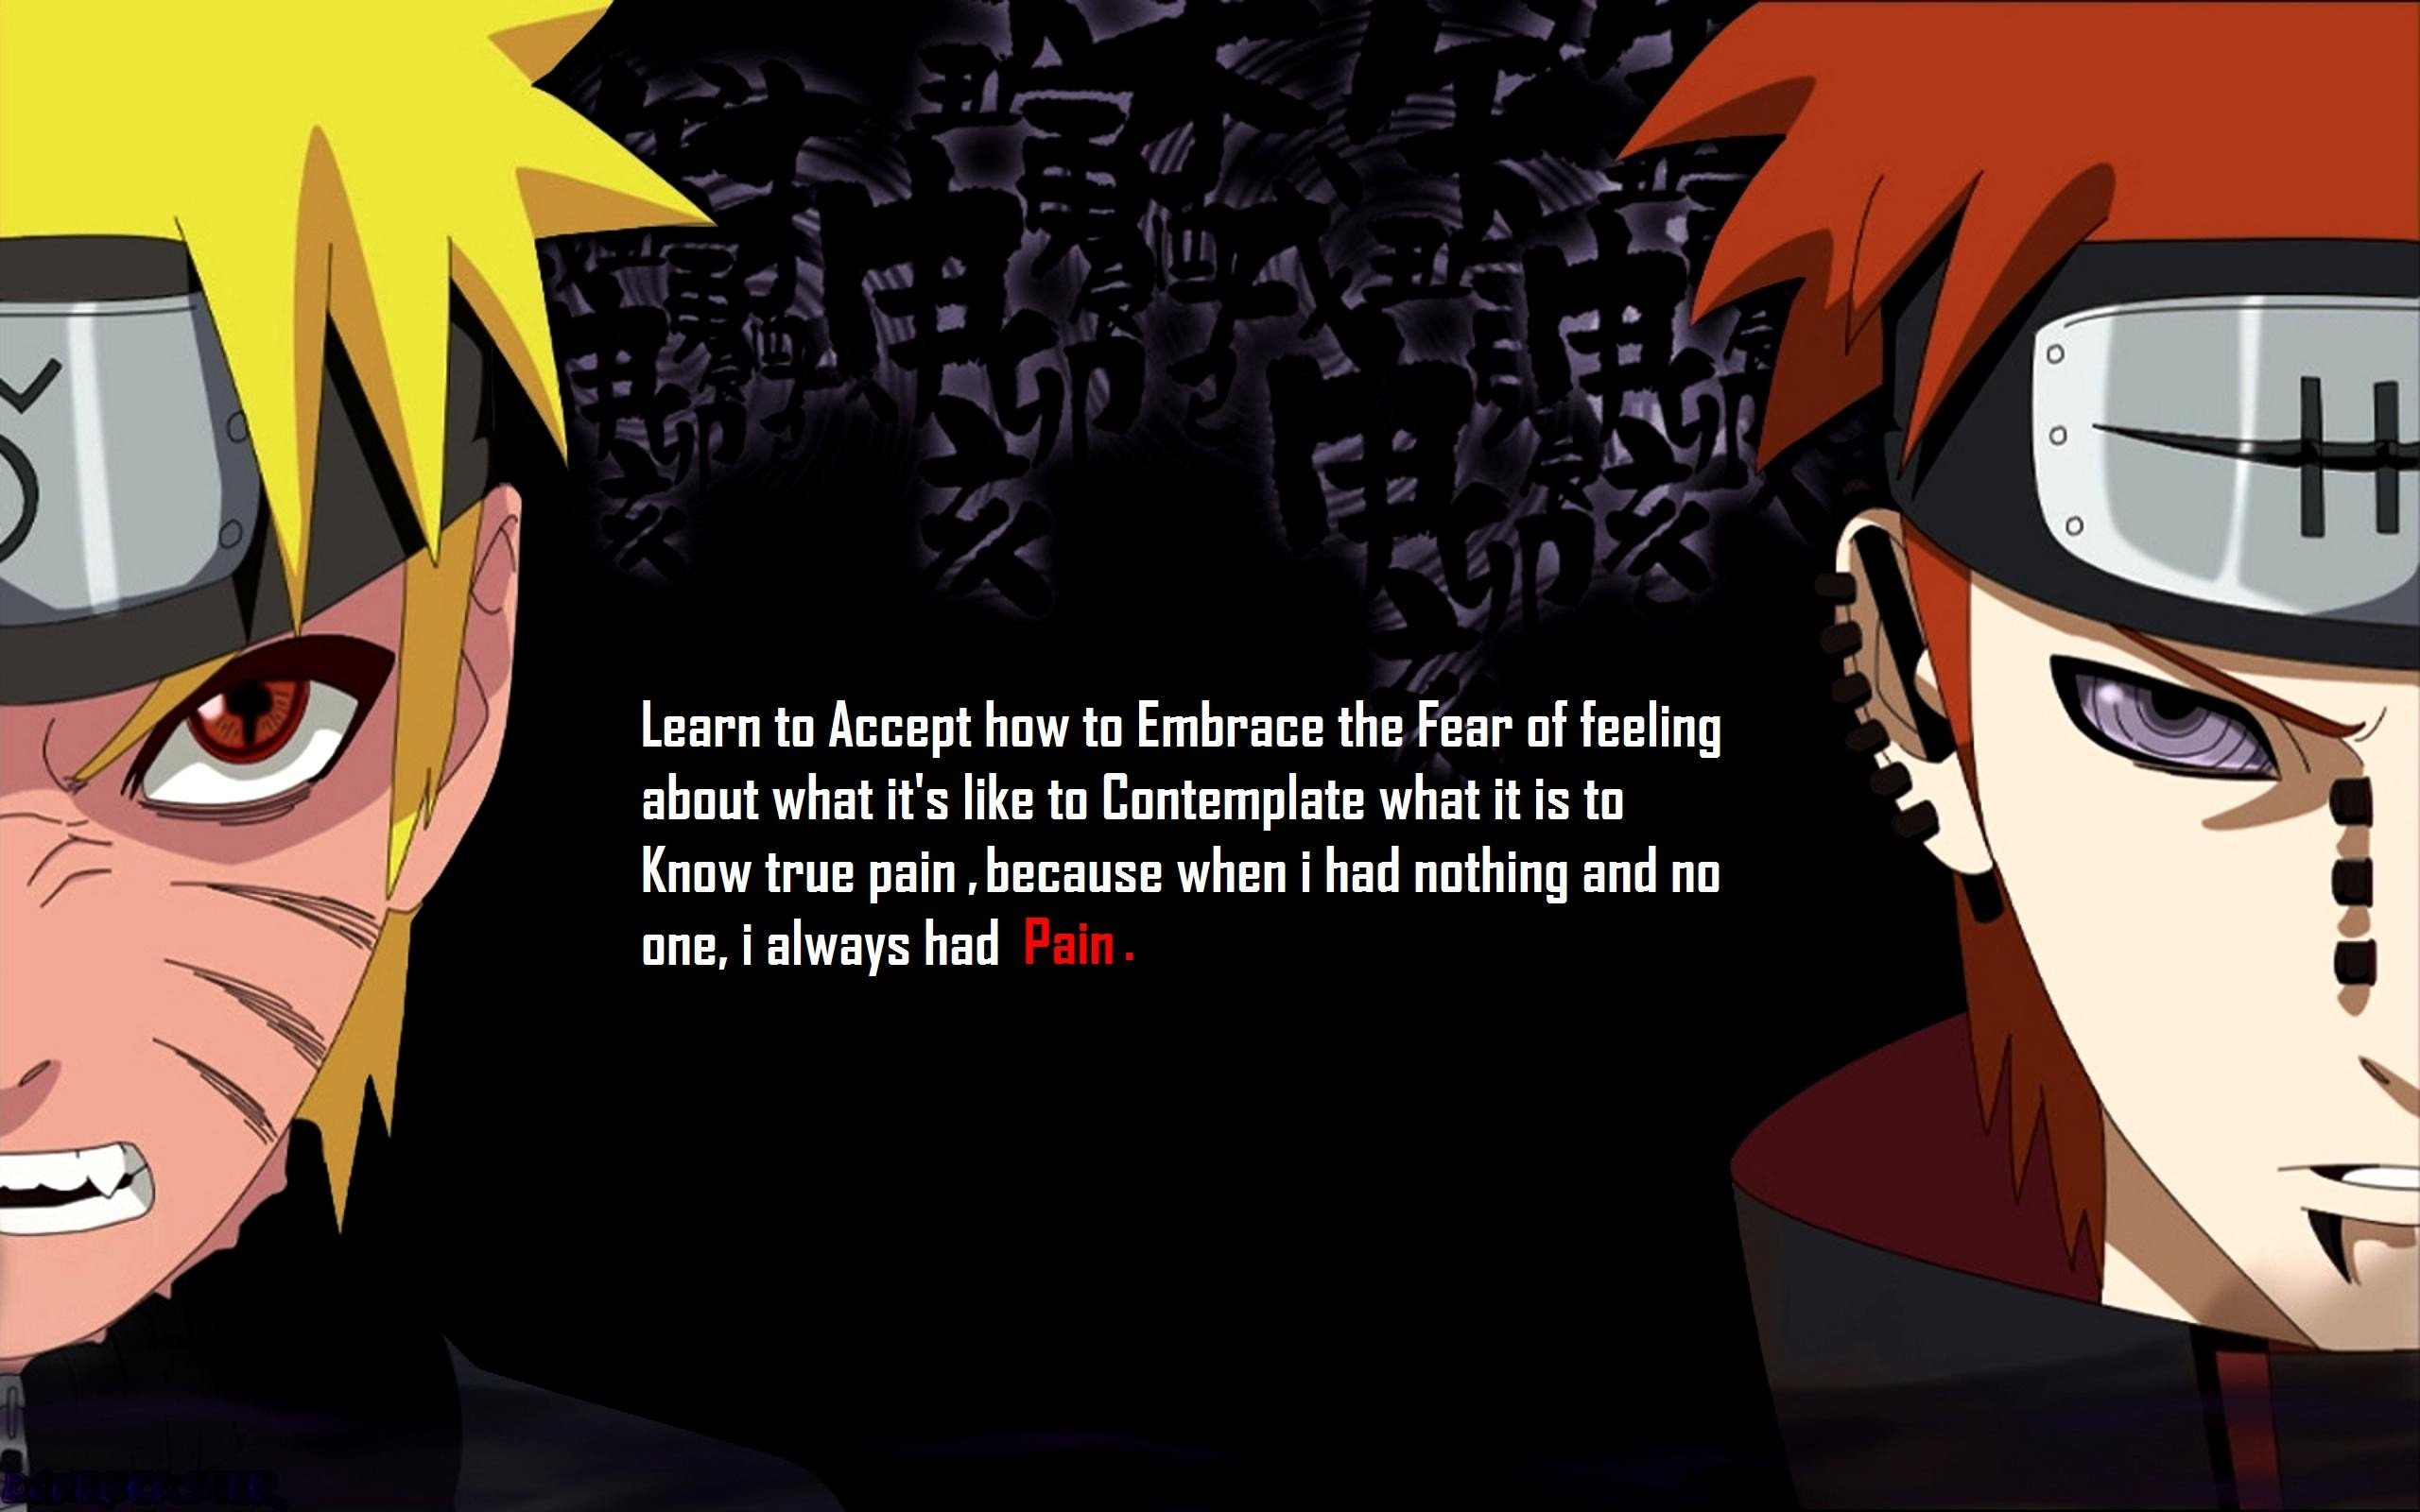 text quotes pain Naruto Shippuden Akatsuki hate red eyes characters 2560x1600